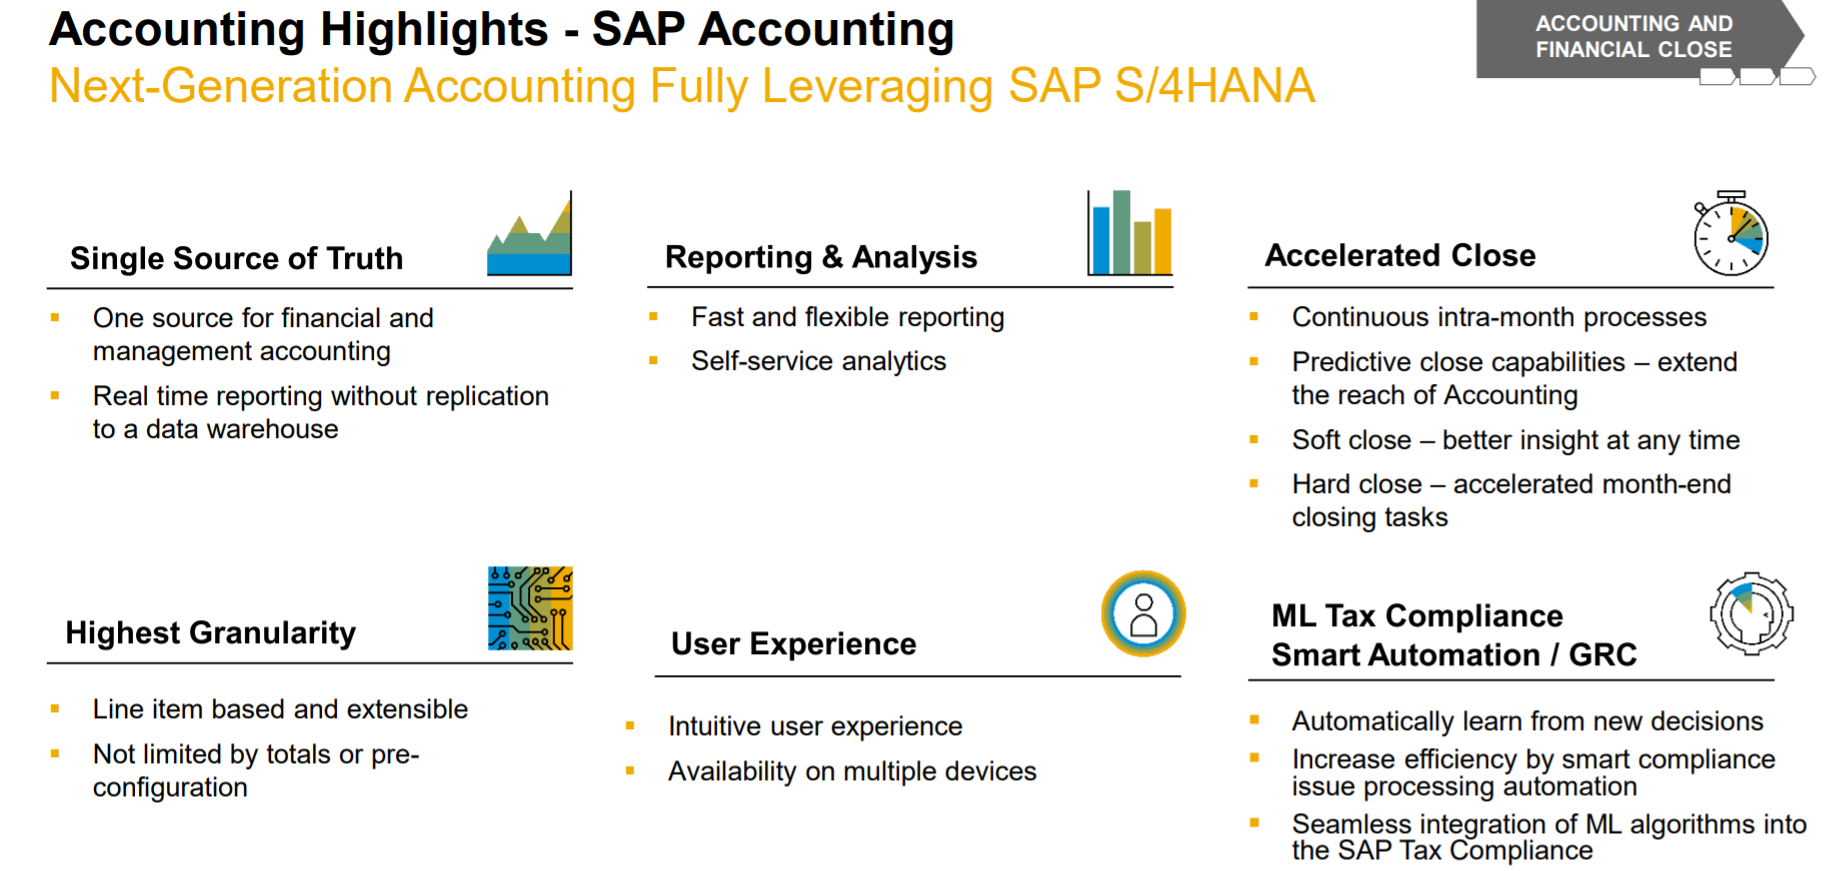 What is the business scope of SAP S/4HANA? 1